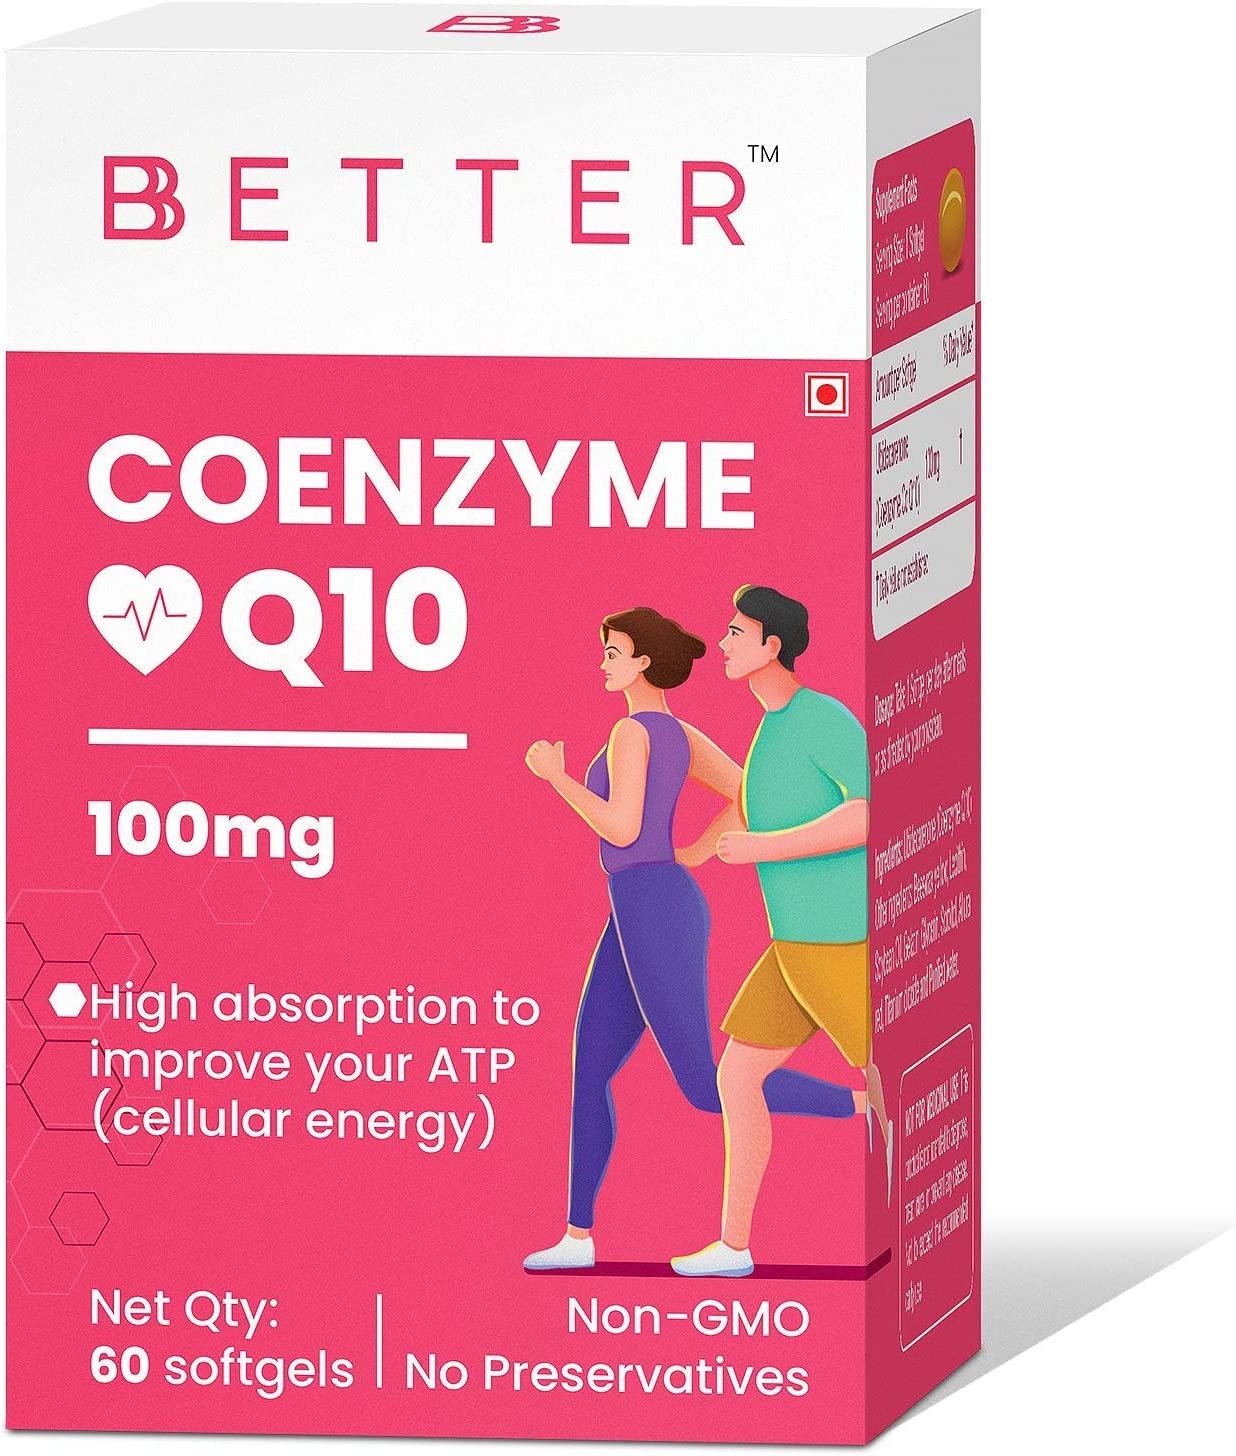 Large discharge sale Madow Coenzyme Q10 100mg Supplement high Impr Absorption to Under blast sales with